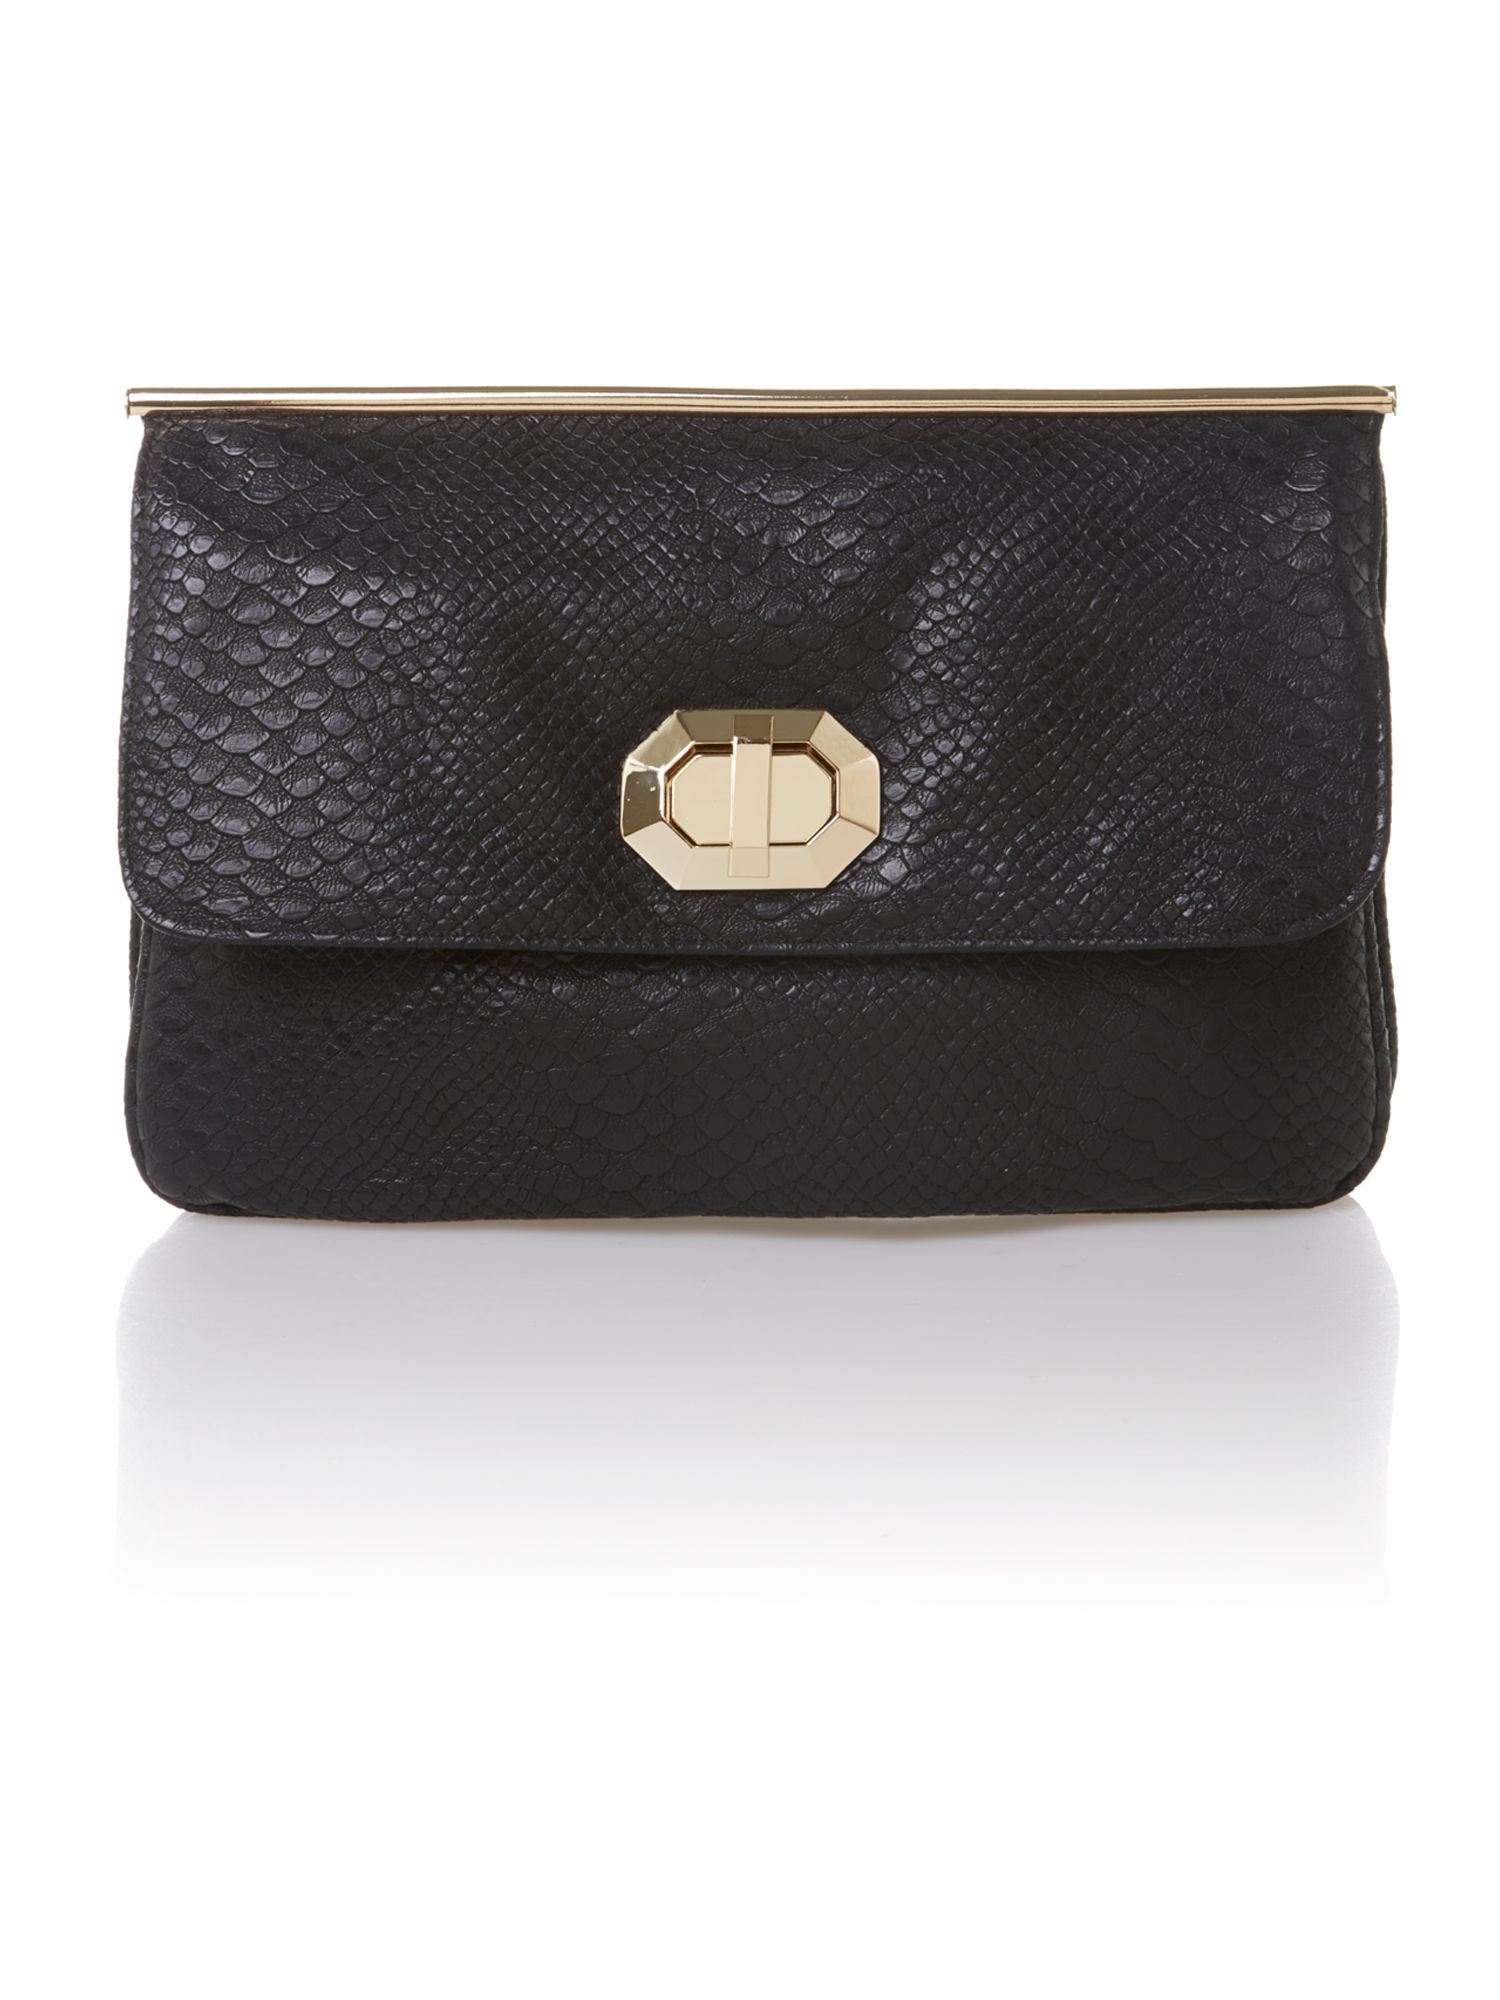 Snake black clutch bag